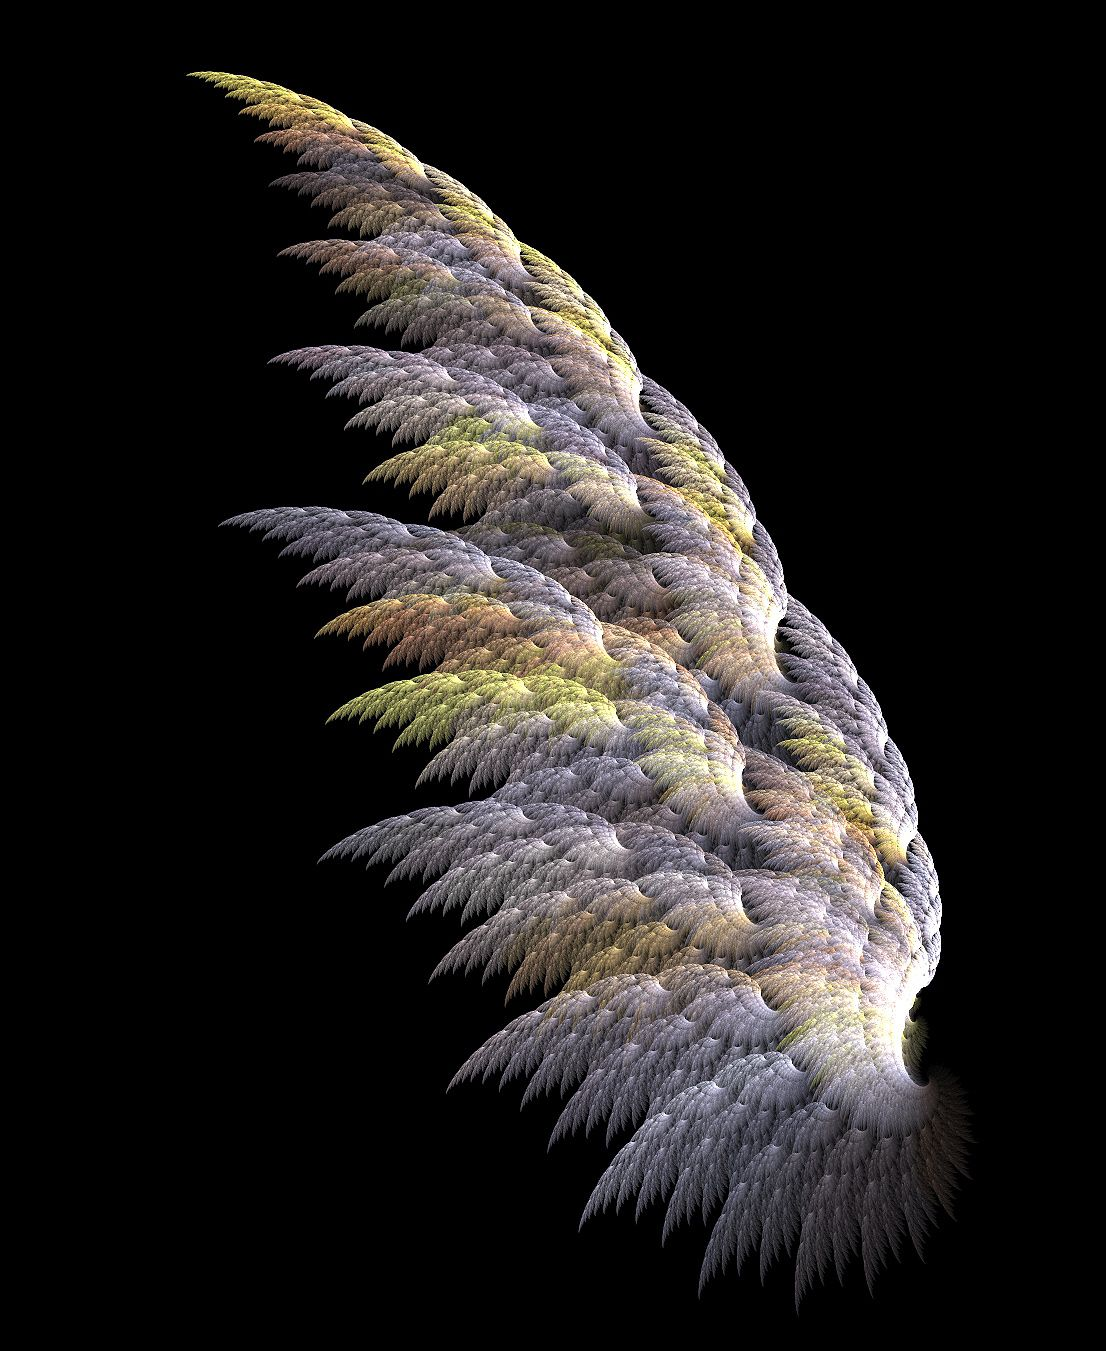 fractal_angel_wing_by_shadoweddancerd1e8g1w.jpg 1,106